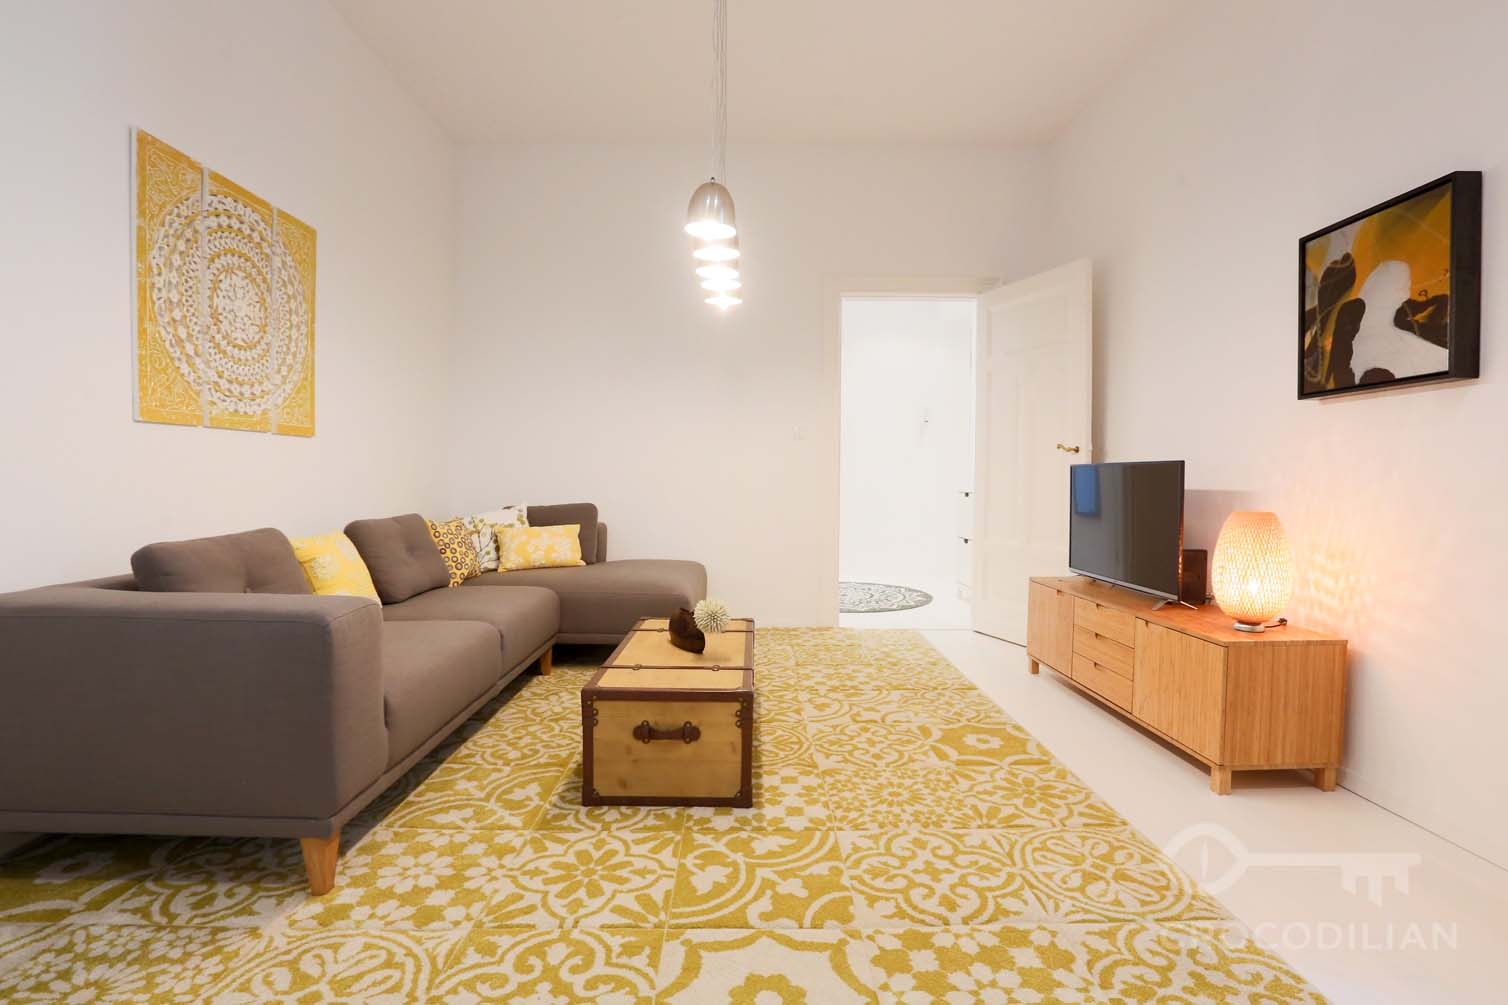 Exclusive Design 3,5 -Room Apartment, 2 Bedrooms, close to Potsdamer Platz, Zimmerstr.